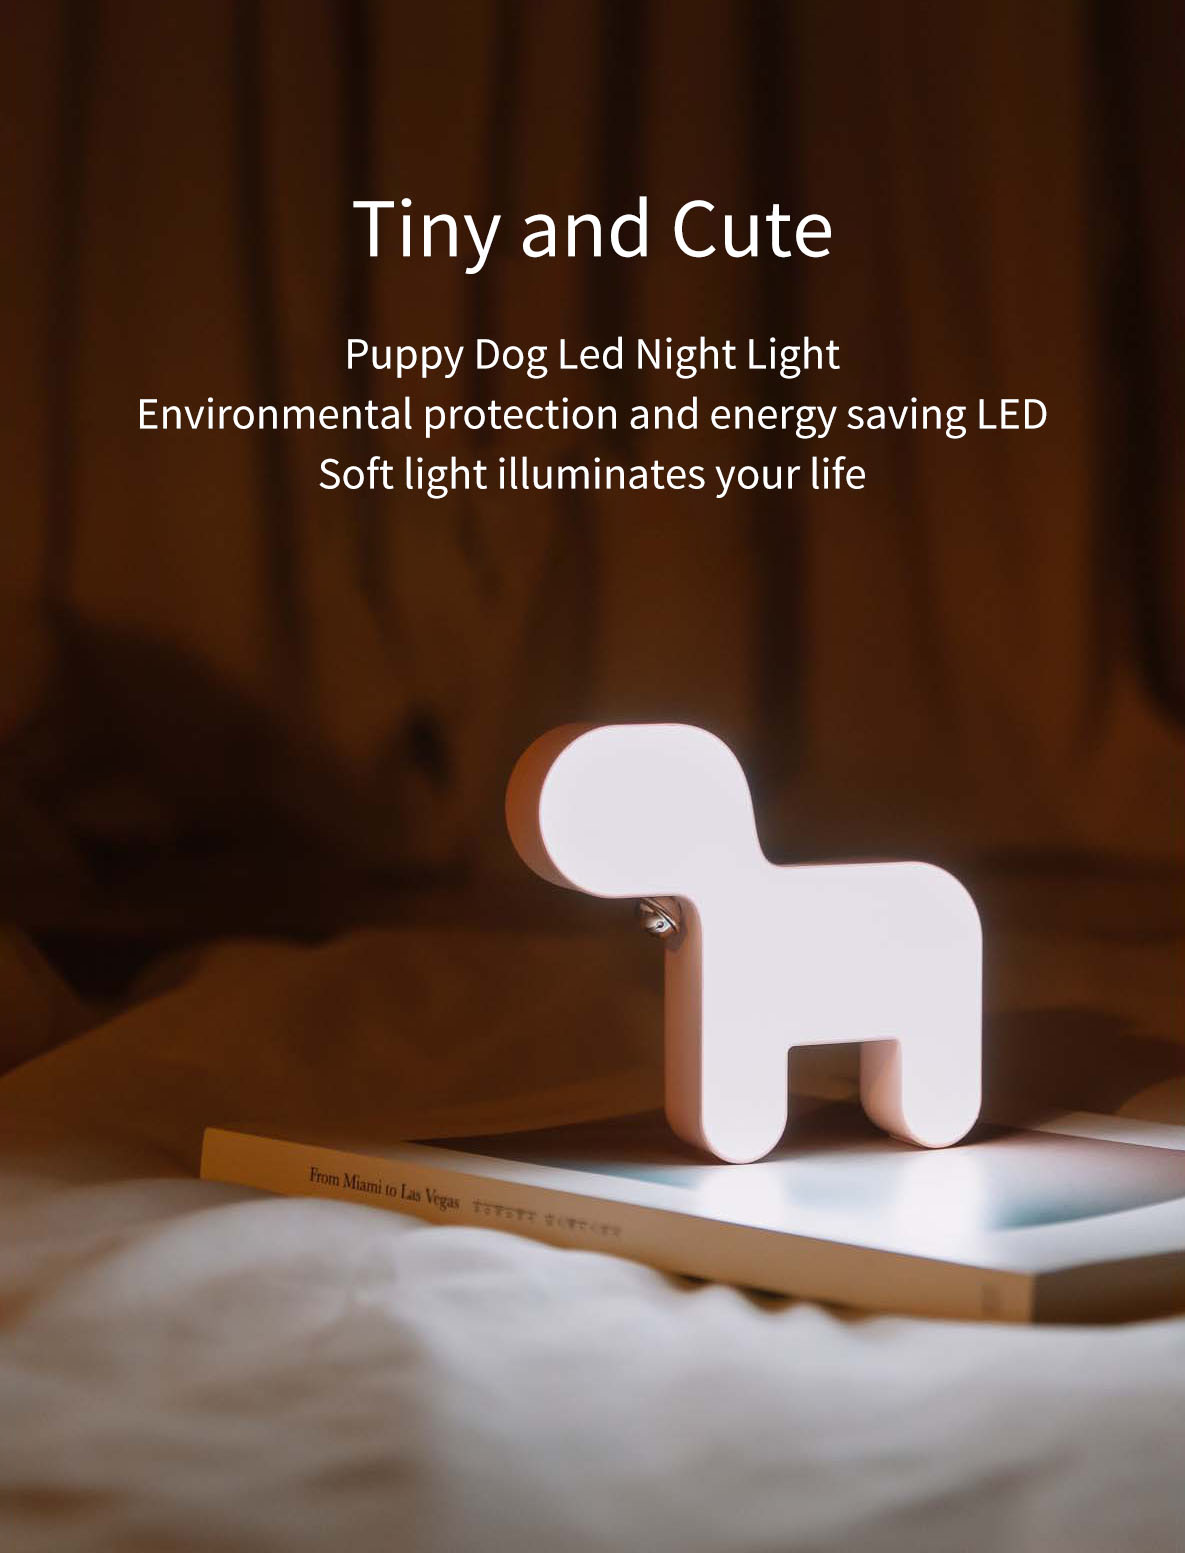 Cute Puppy Dog Led Night Light USB Rechargeable Small Bell Decor Lighting Timing LED Bedside Lamp